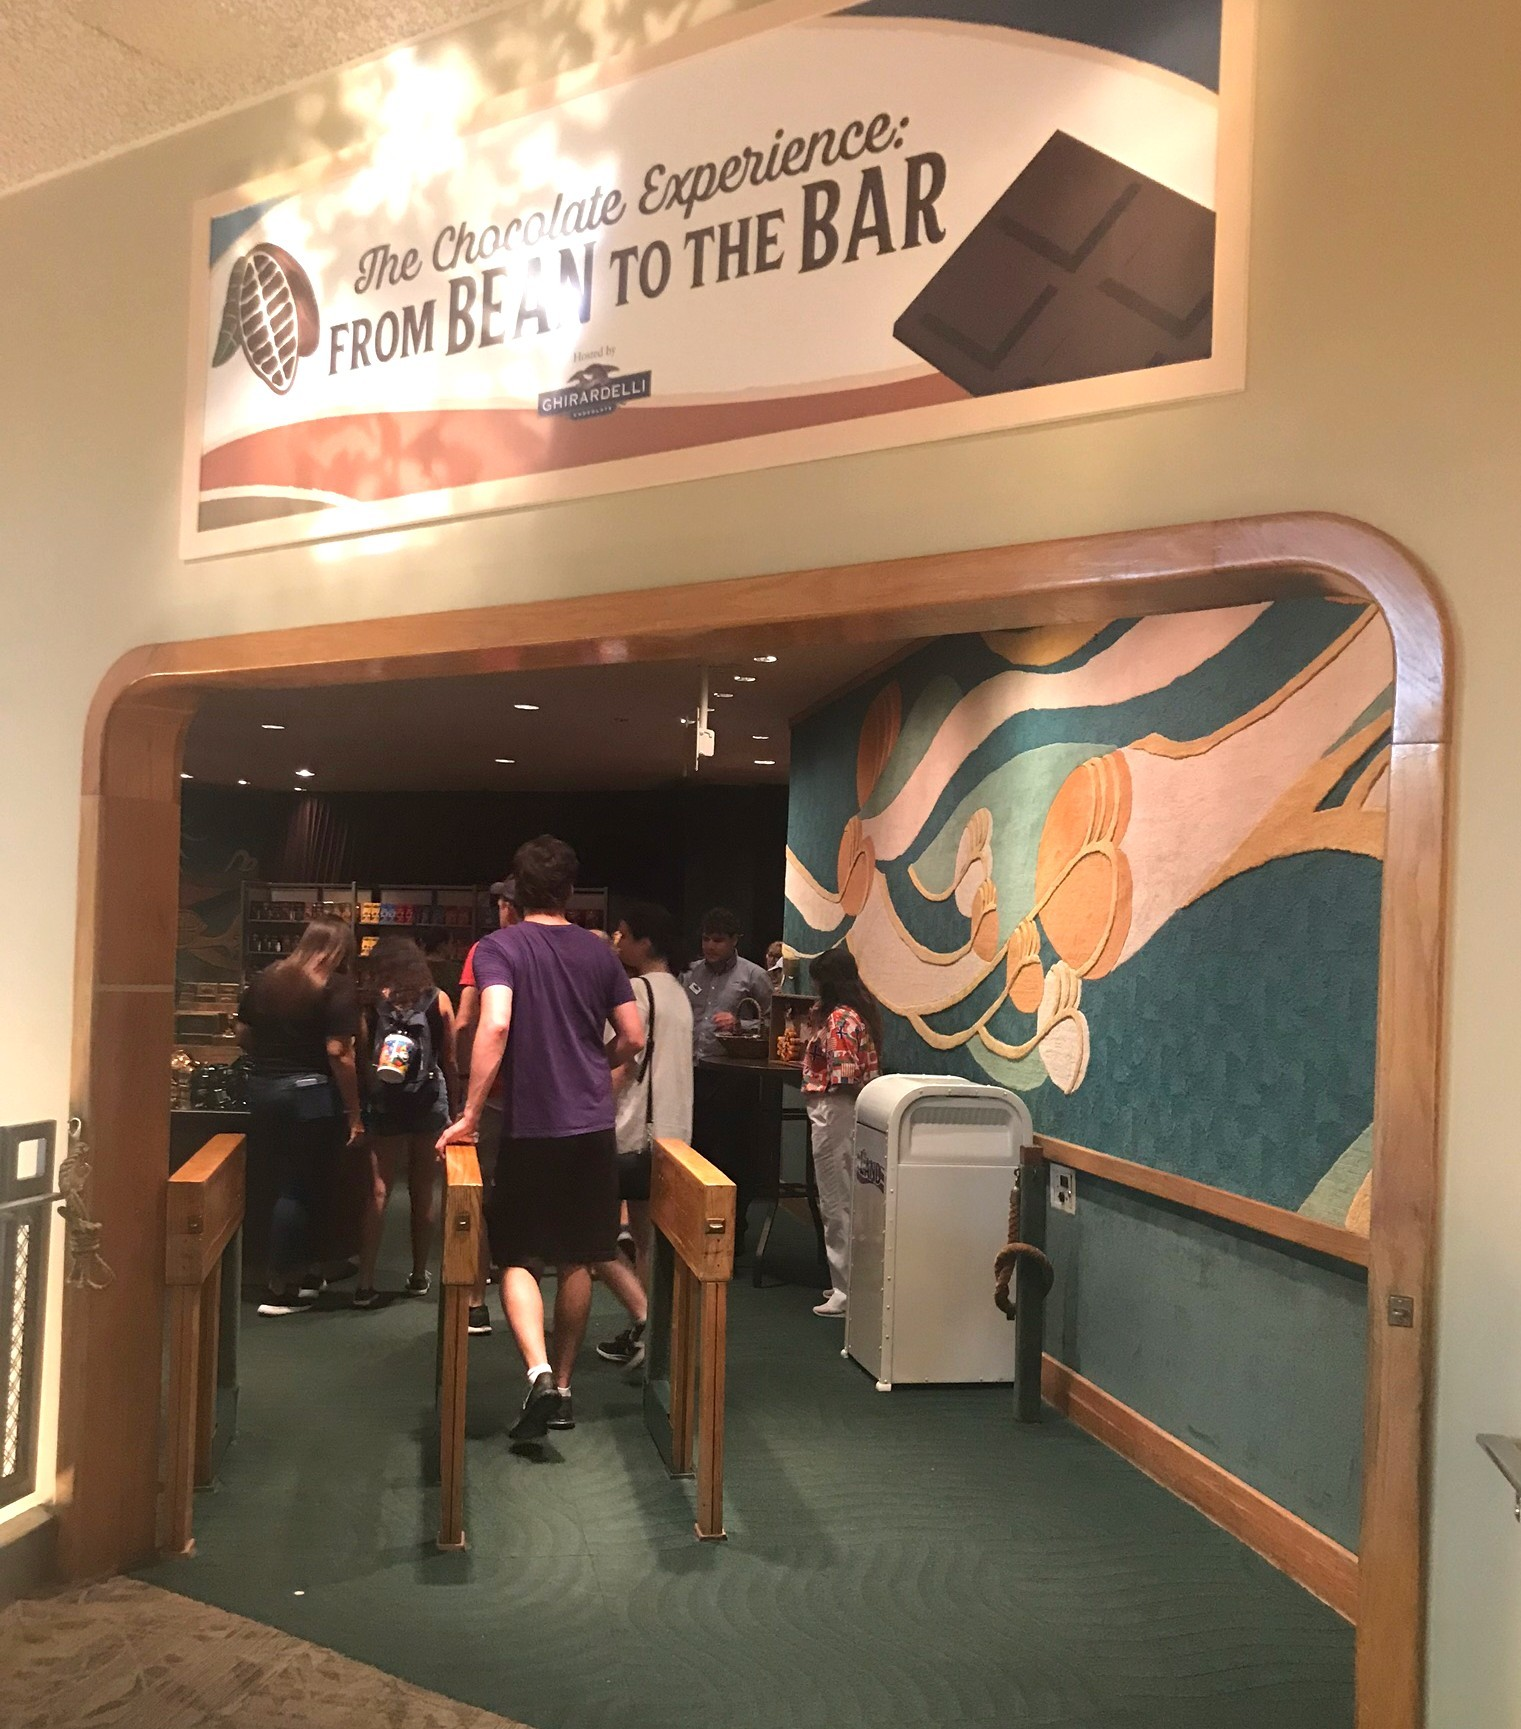 The Chocolate Experience queue